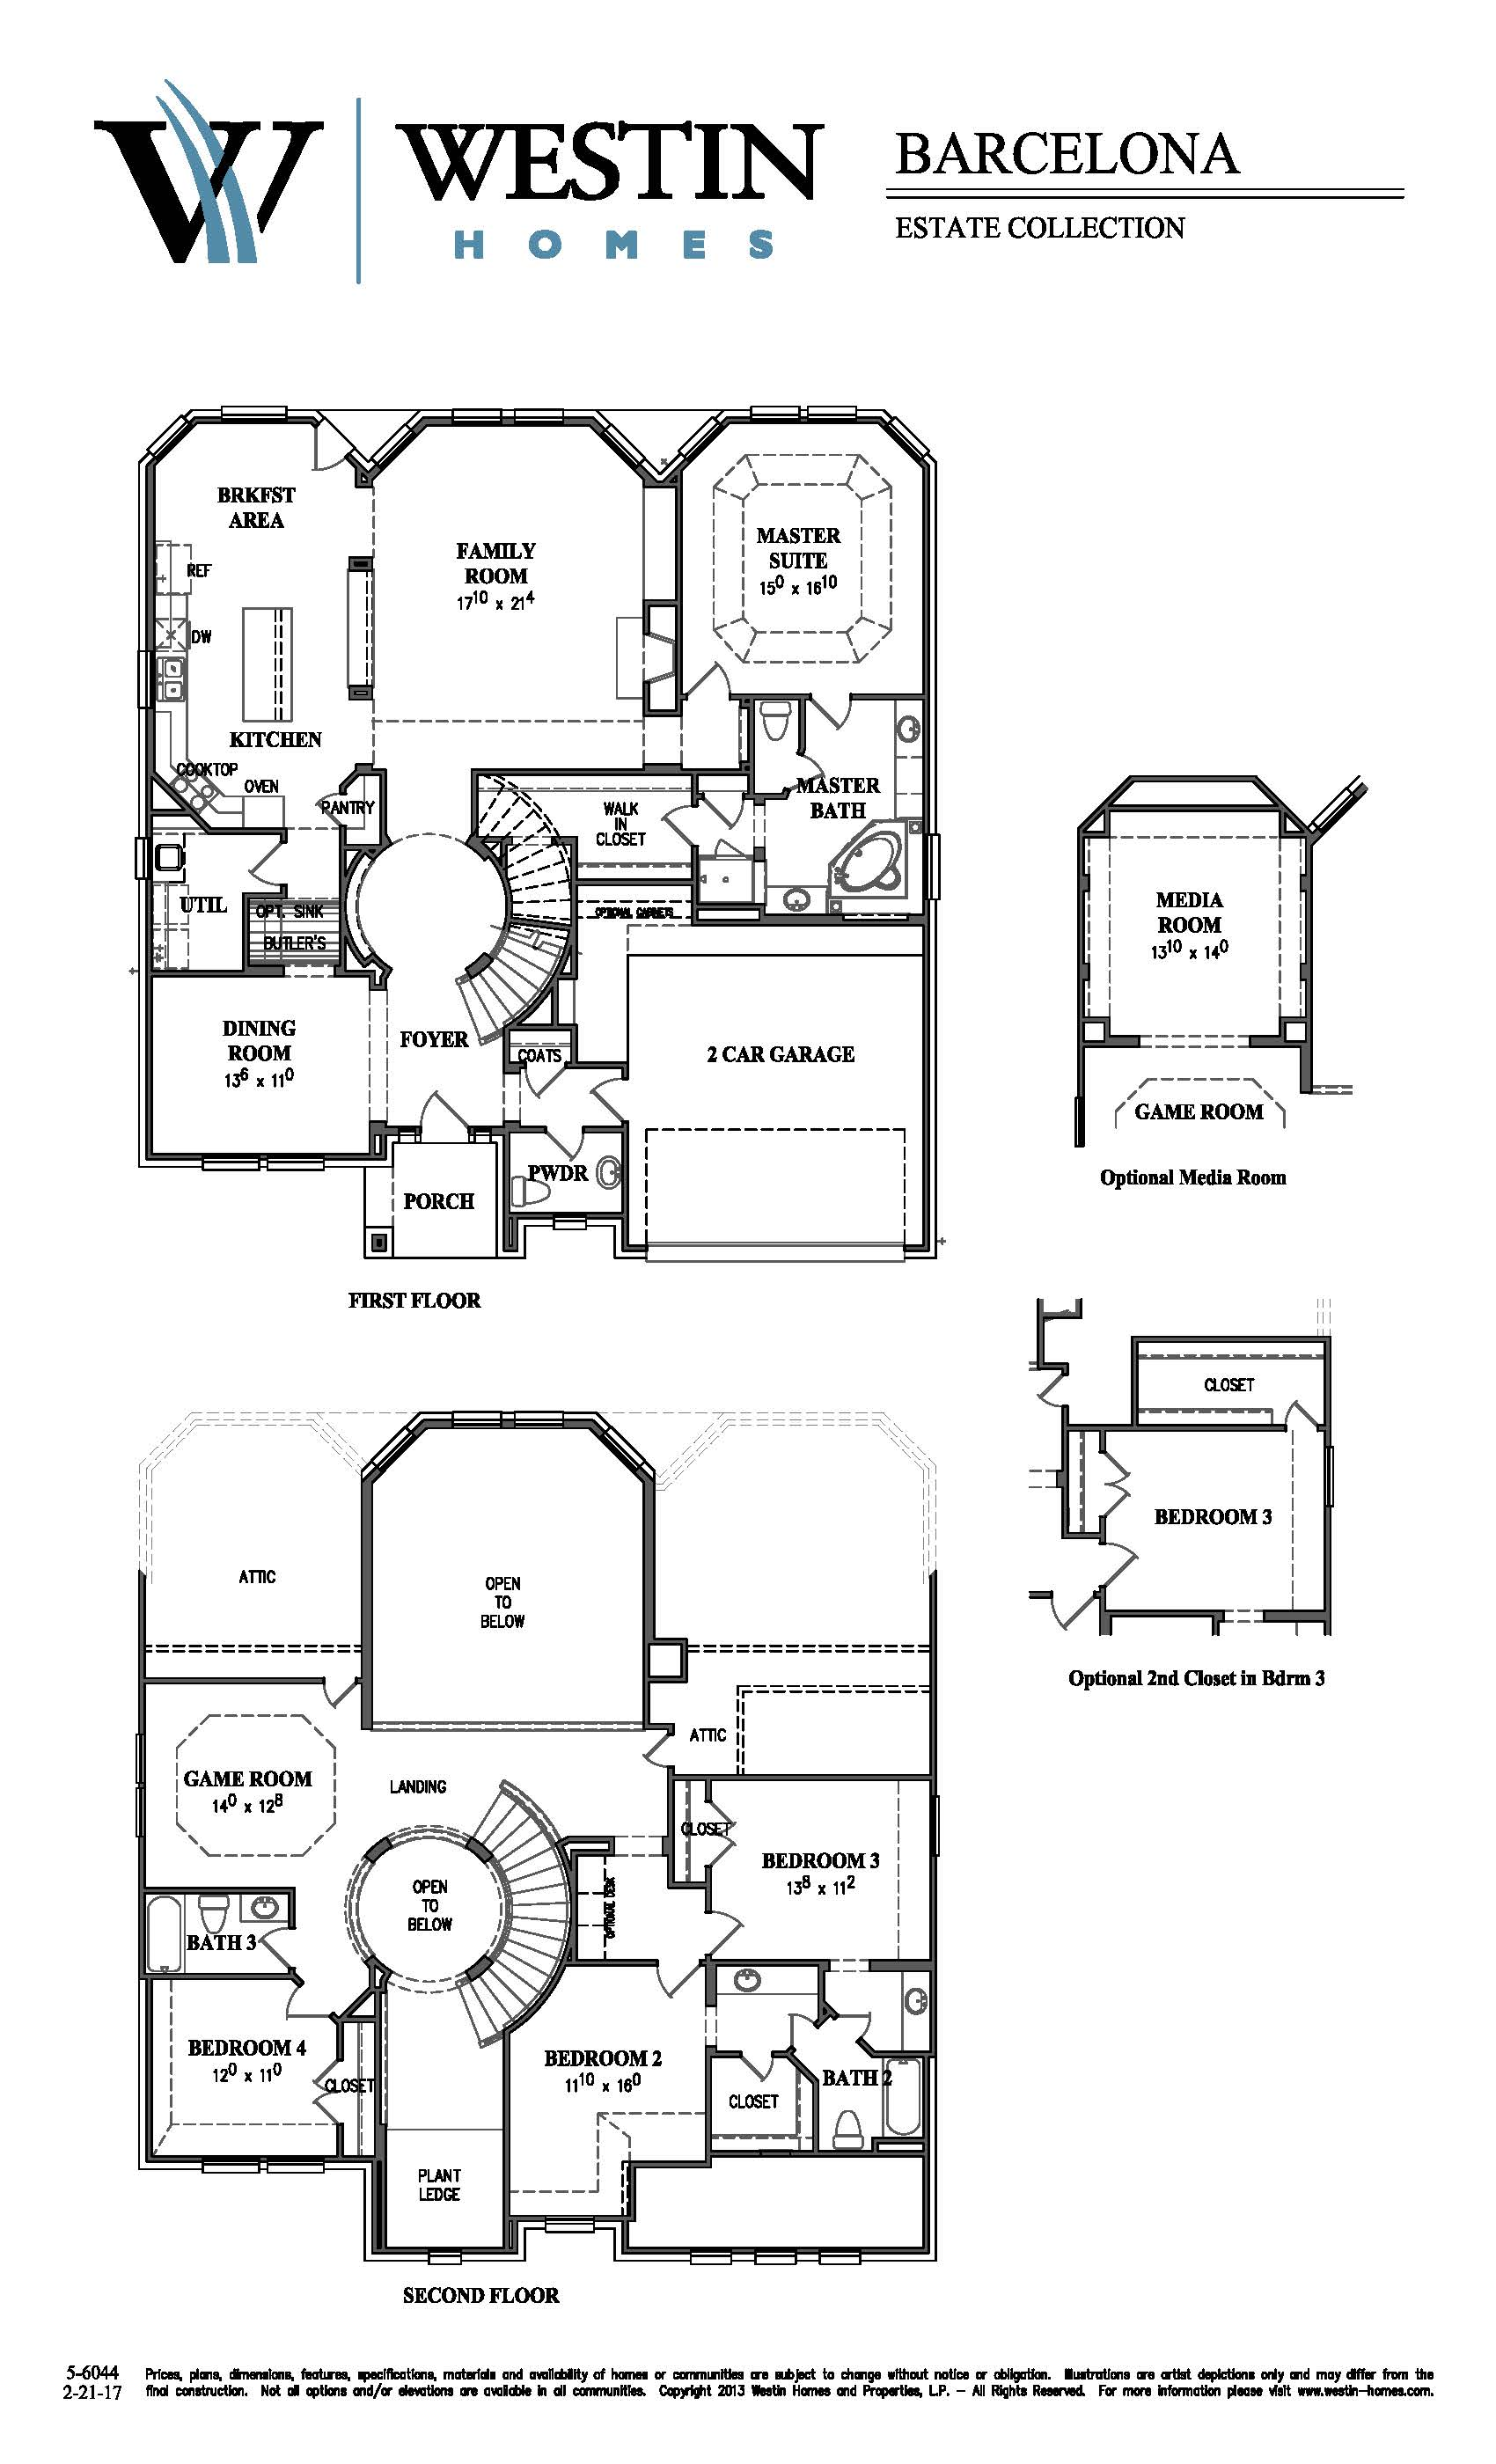 Lovely Westin Homes Floor Plans Part - 3: FloorPlan